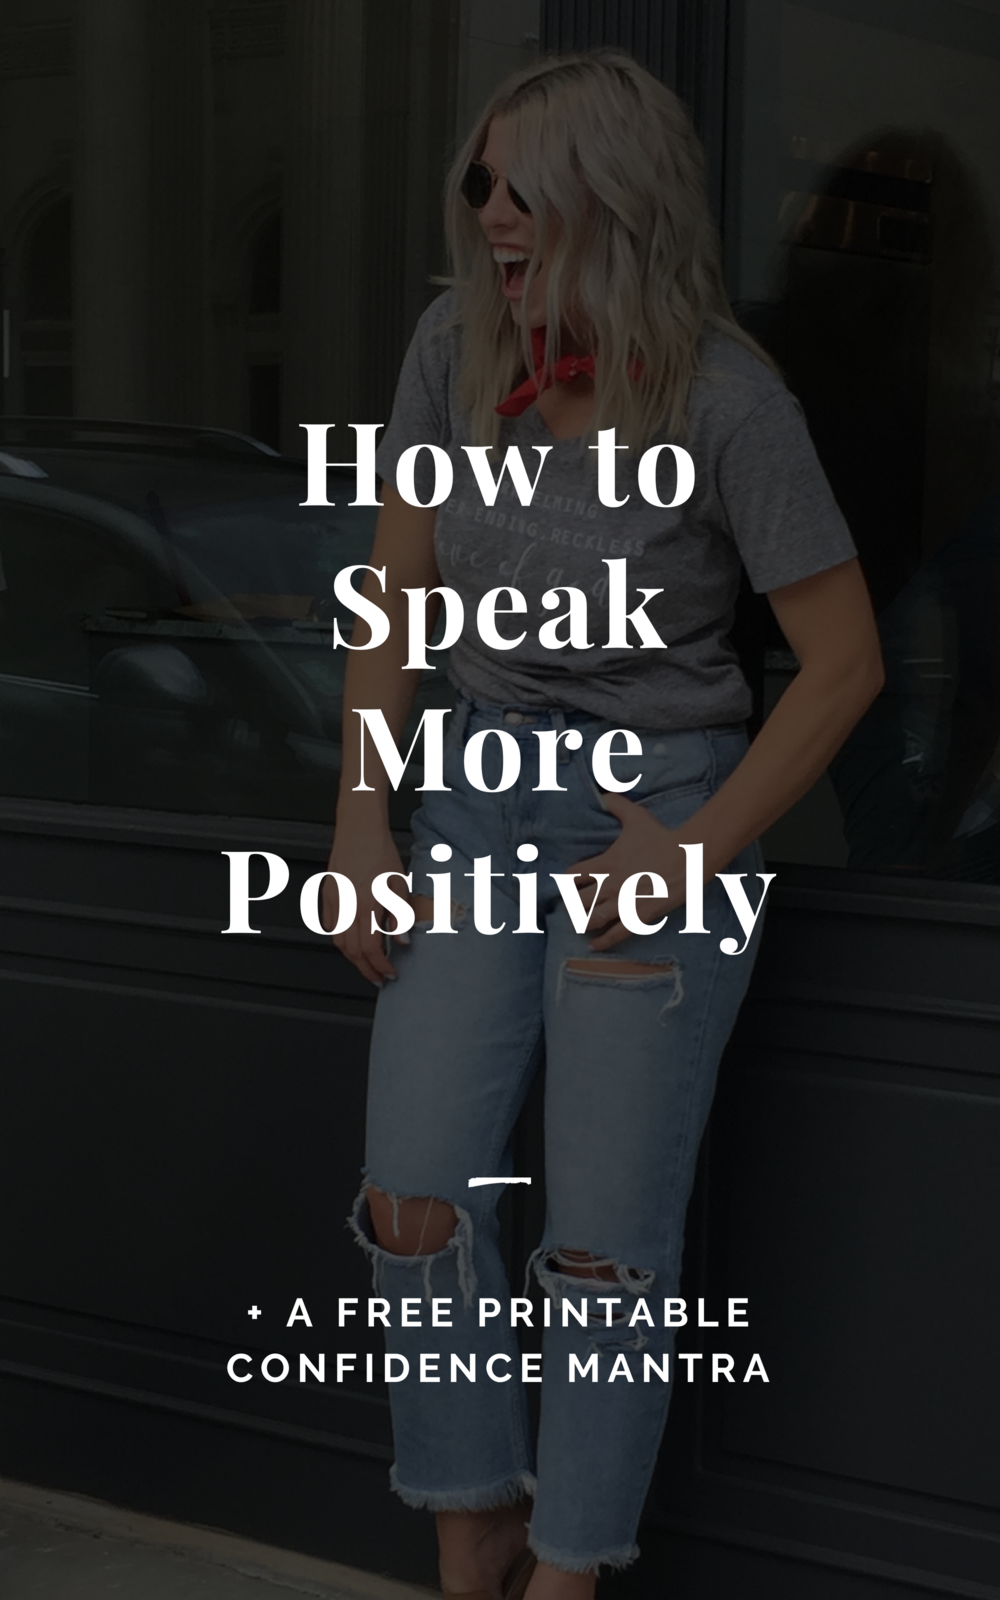 How to Speak More Positively